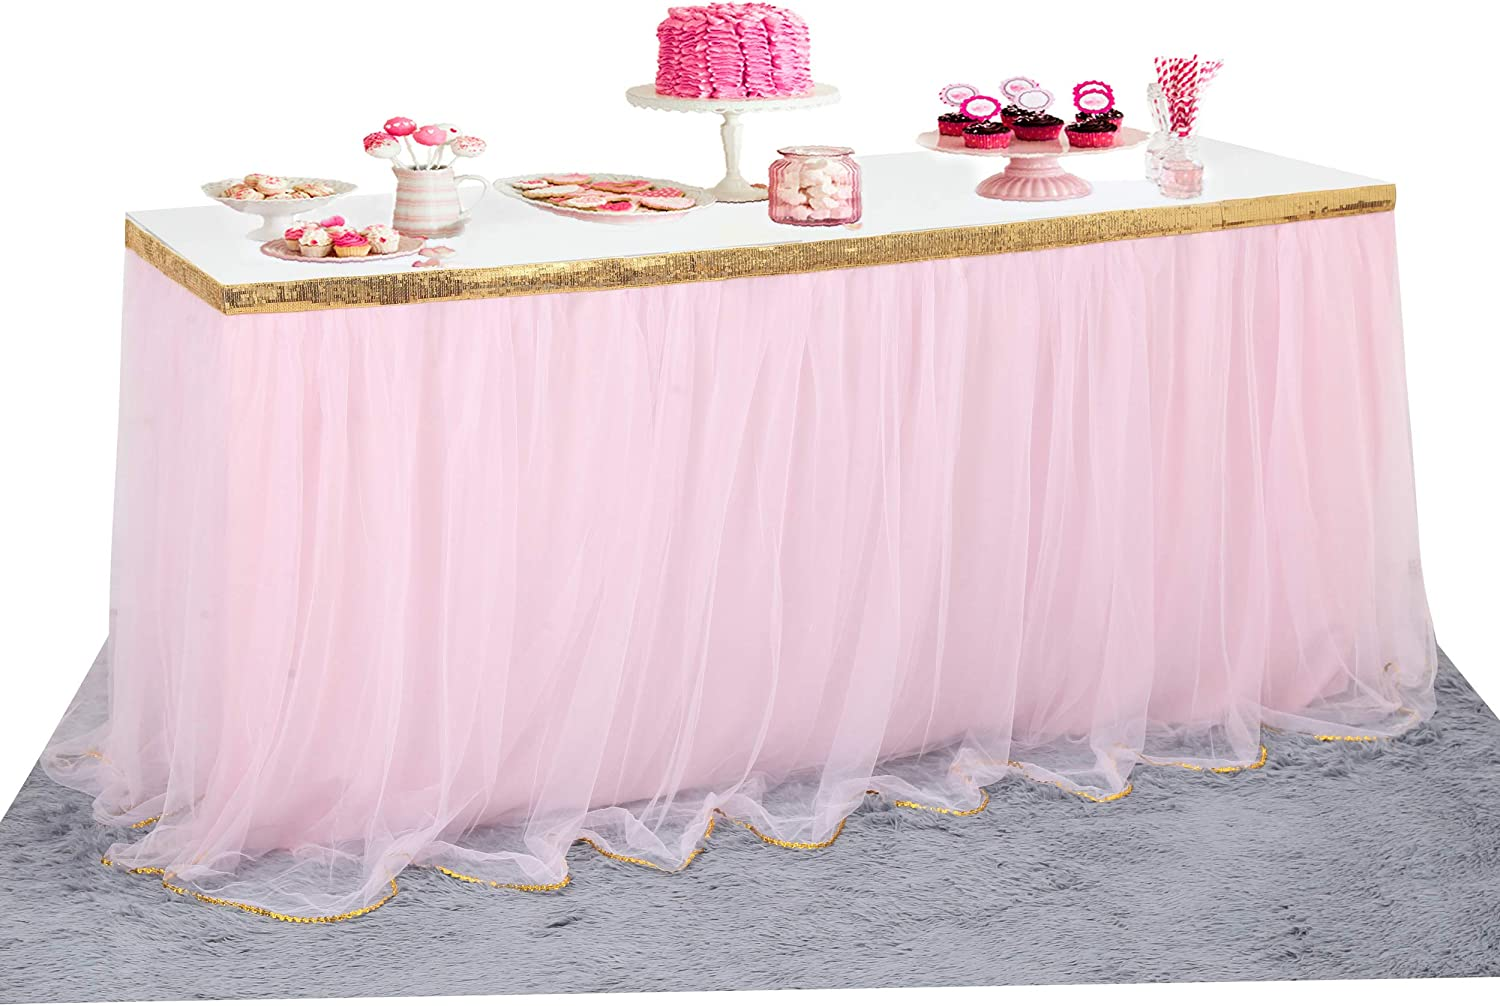 Pink Tulle Table Skirt Tutu Table Skirt for Candy Buffet Supplies Baby Shower Centerpieces Princess Birthday Unicorn Party Decorations 6ft